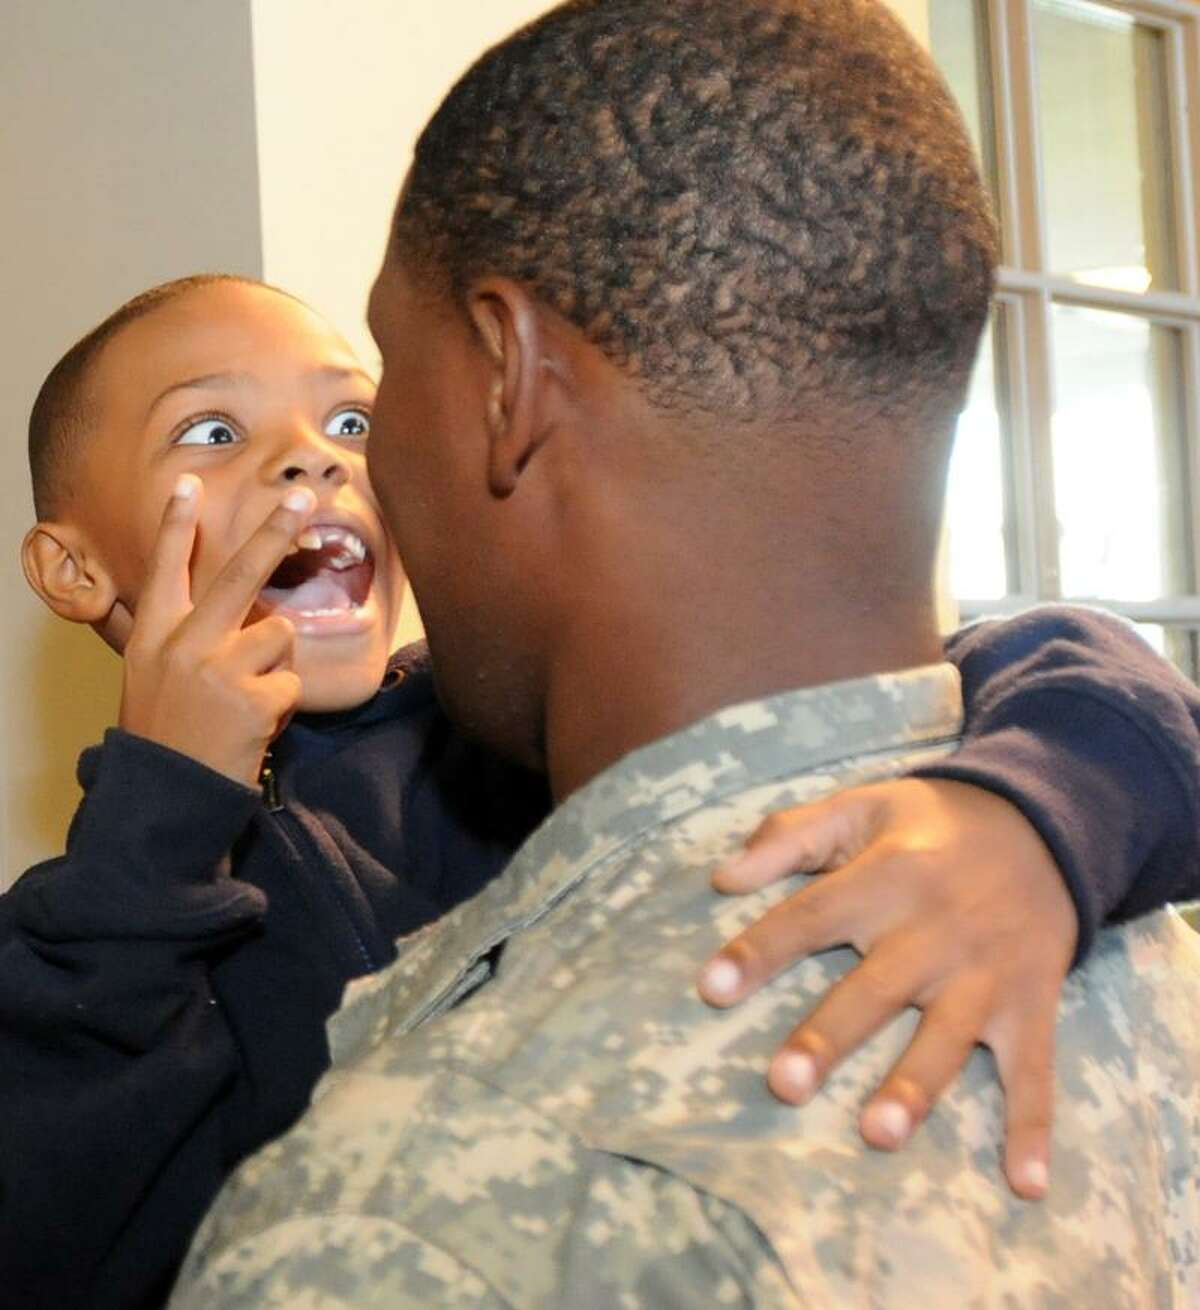 Alex, 7, a second-grader at the John C. Daniels School of International Communication in New Haven is excited to see his father, Nehemias, a serviceman in the Army who surprised him at the school Friday afternoon after just returning from an overseas deployment. The press was asked not to use their last name, the father's rank or unit name. Peter Hvizdak/Register